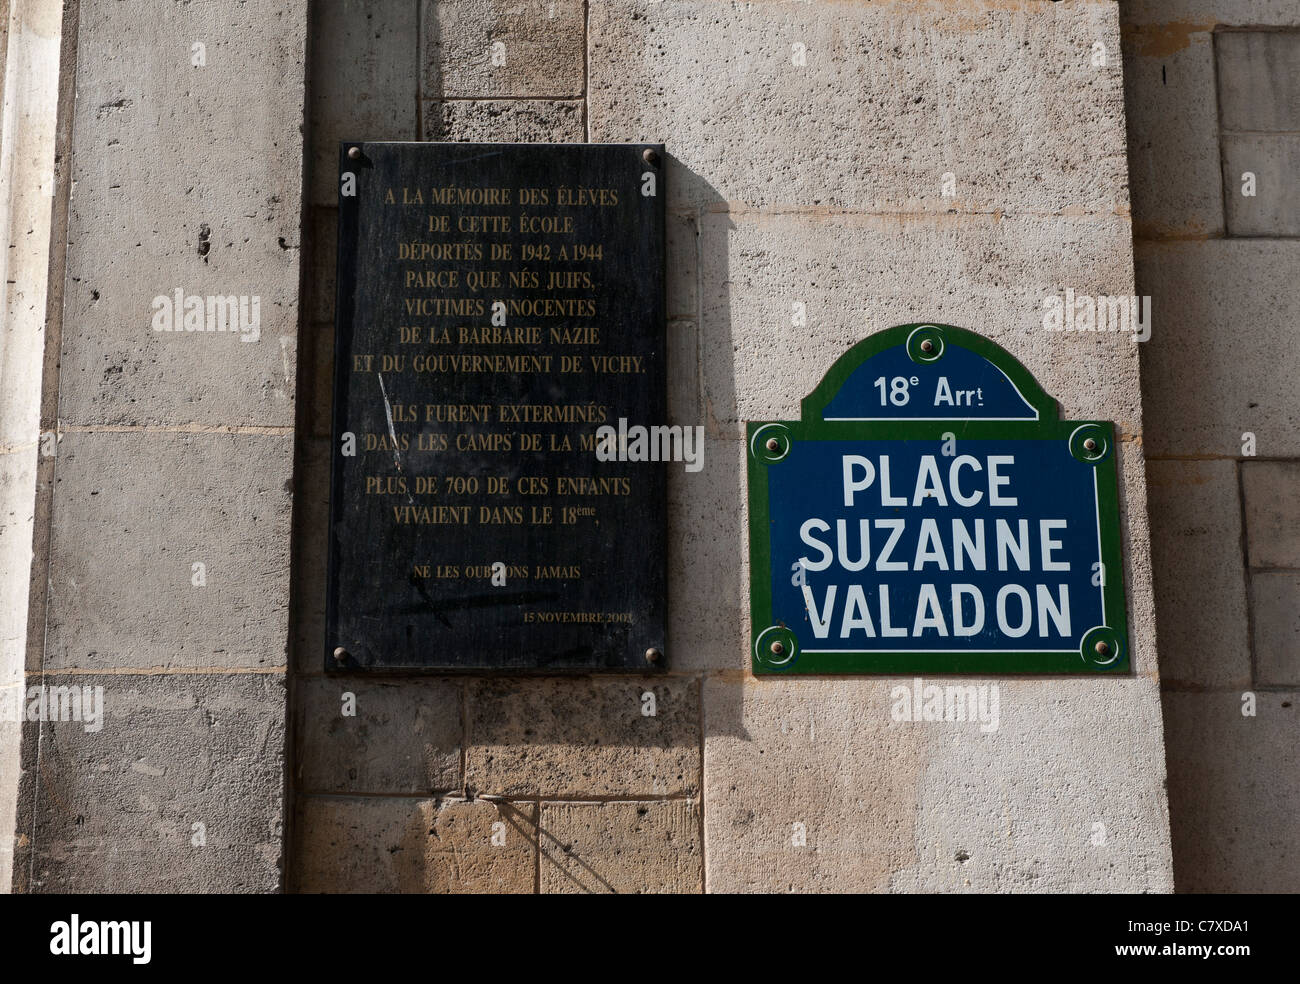 Paris France. Plaque to commemorate victims of the Nazis during WW2 in Montmartre. - Stock Image